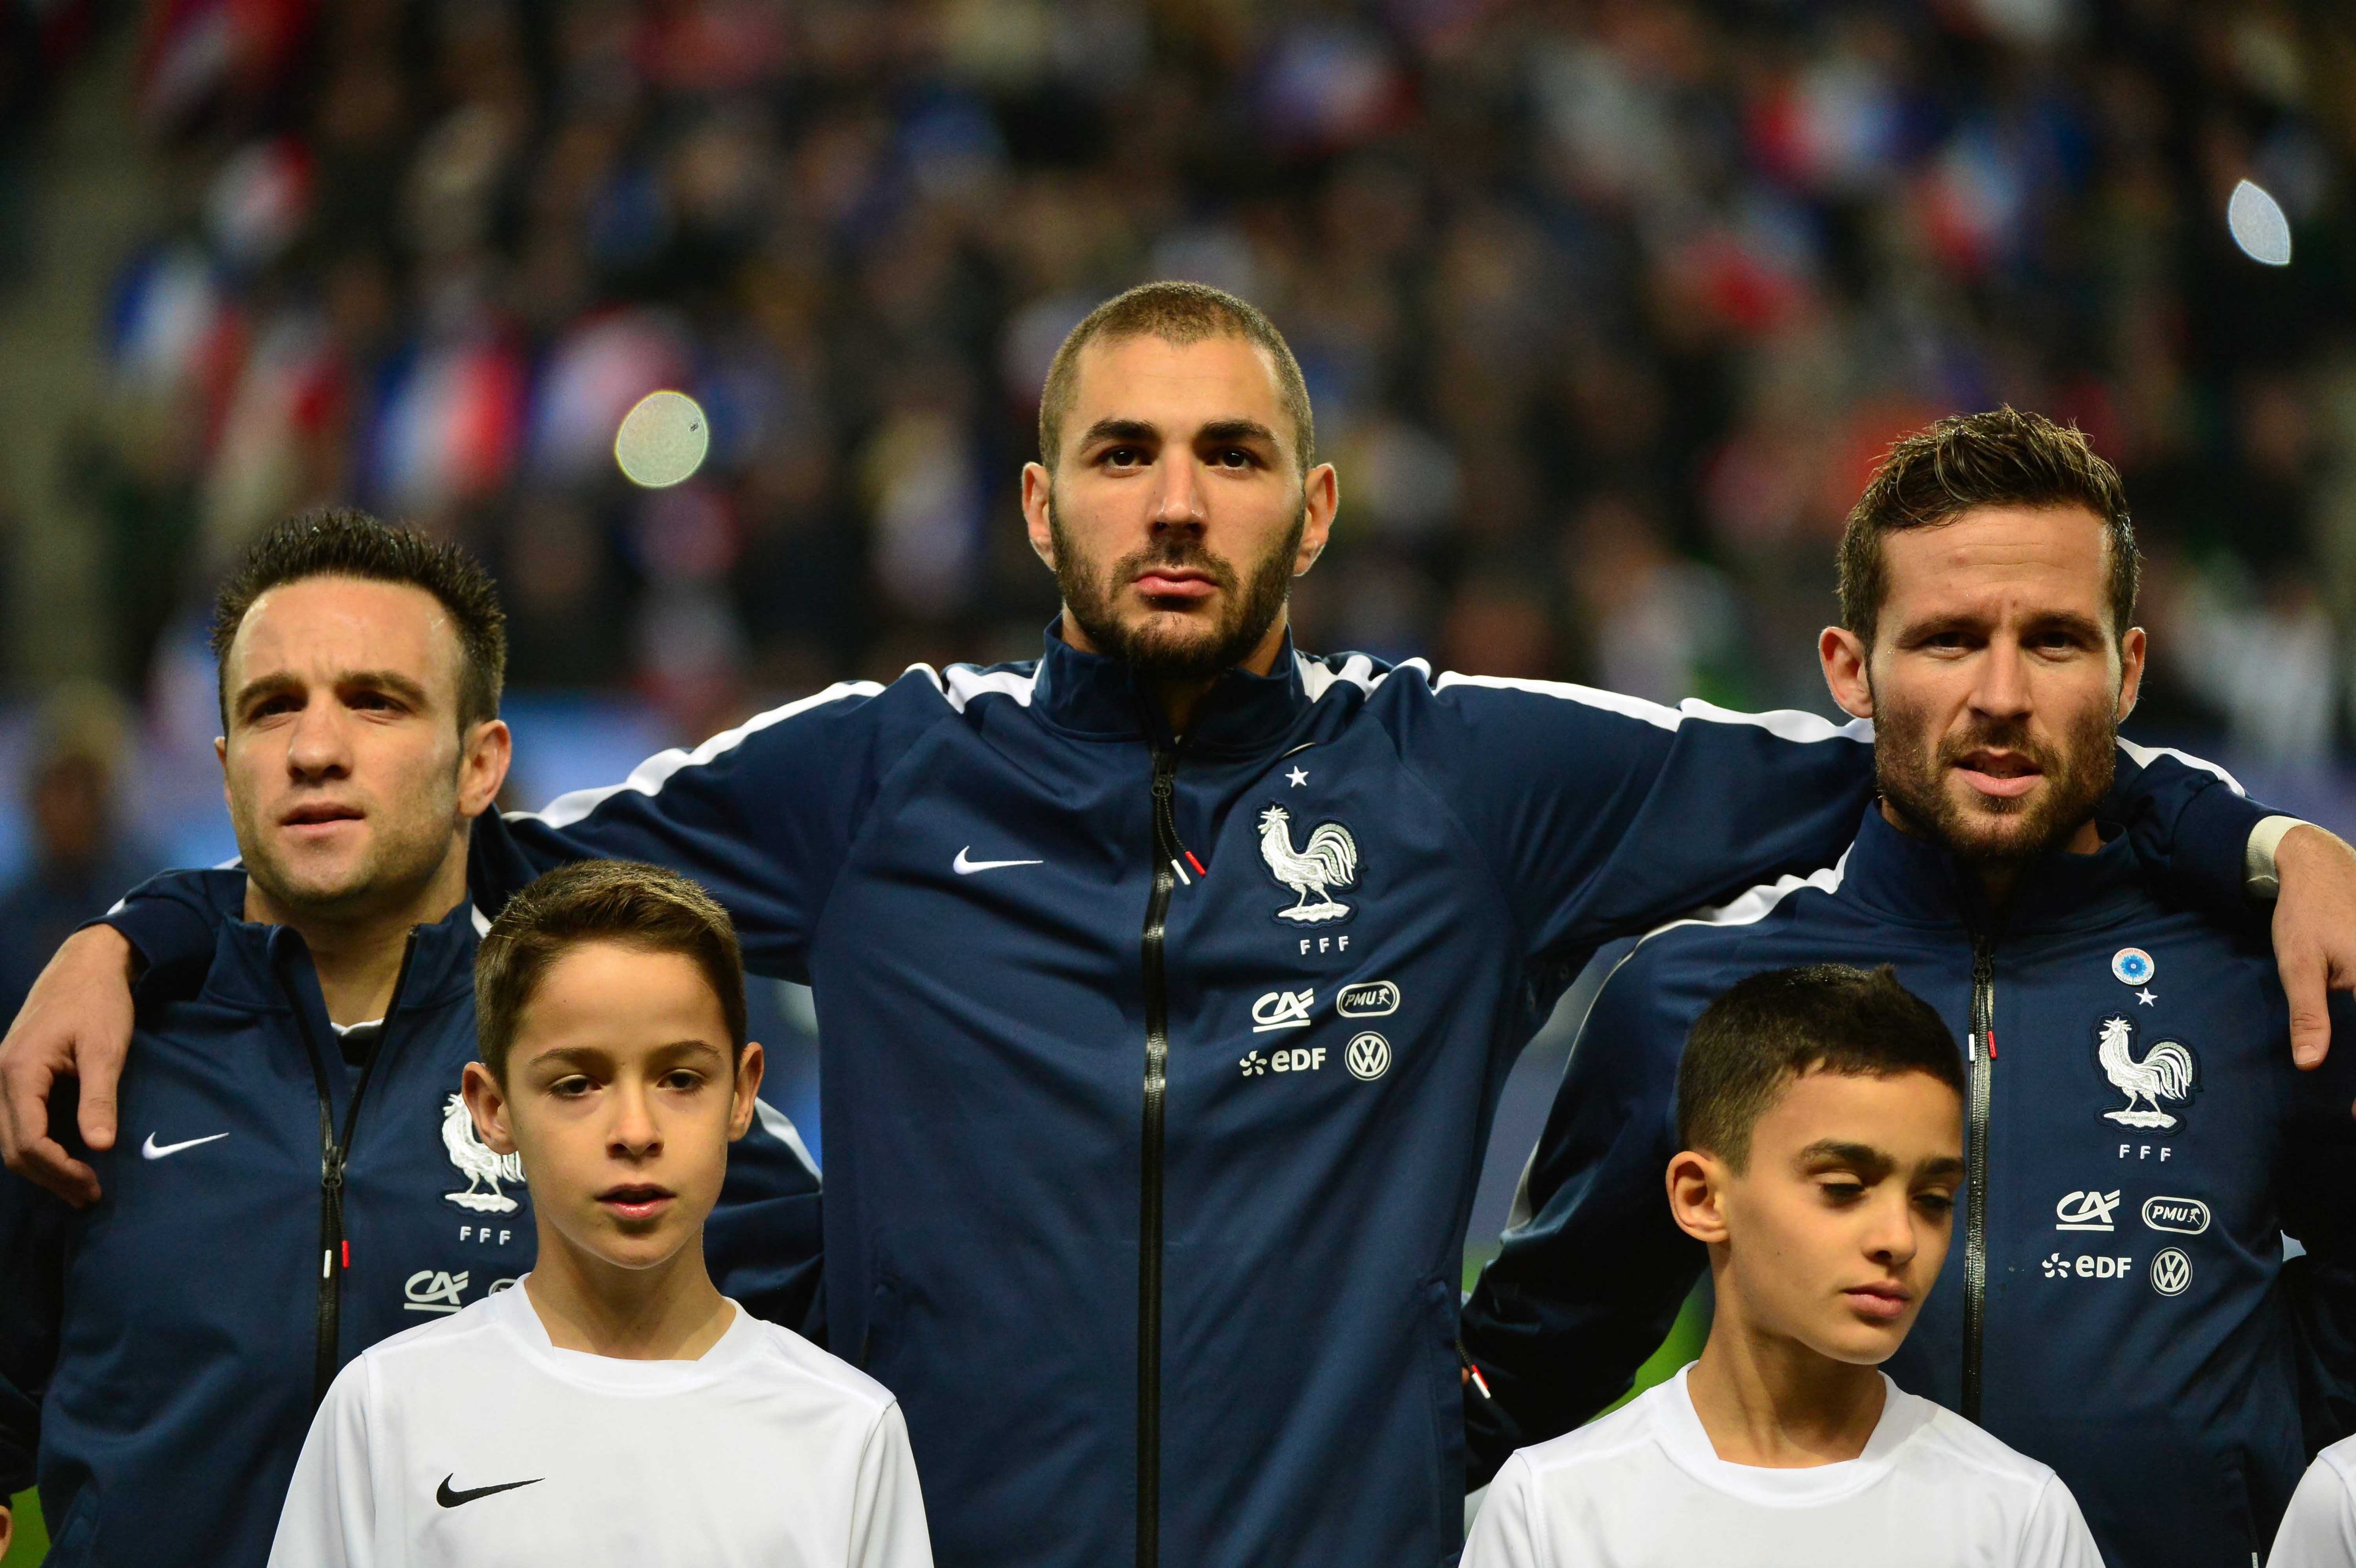 Real Madrid star Karim Benzema snubbed by France & Algeria national teams